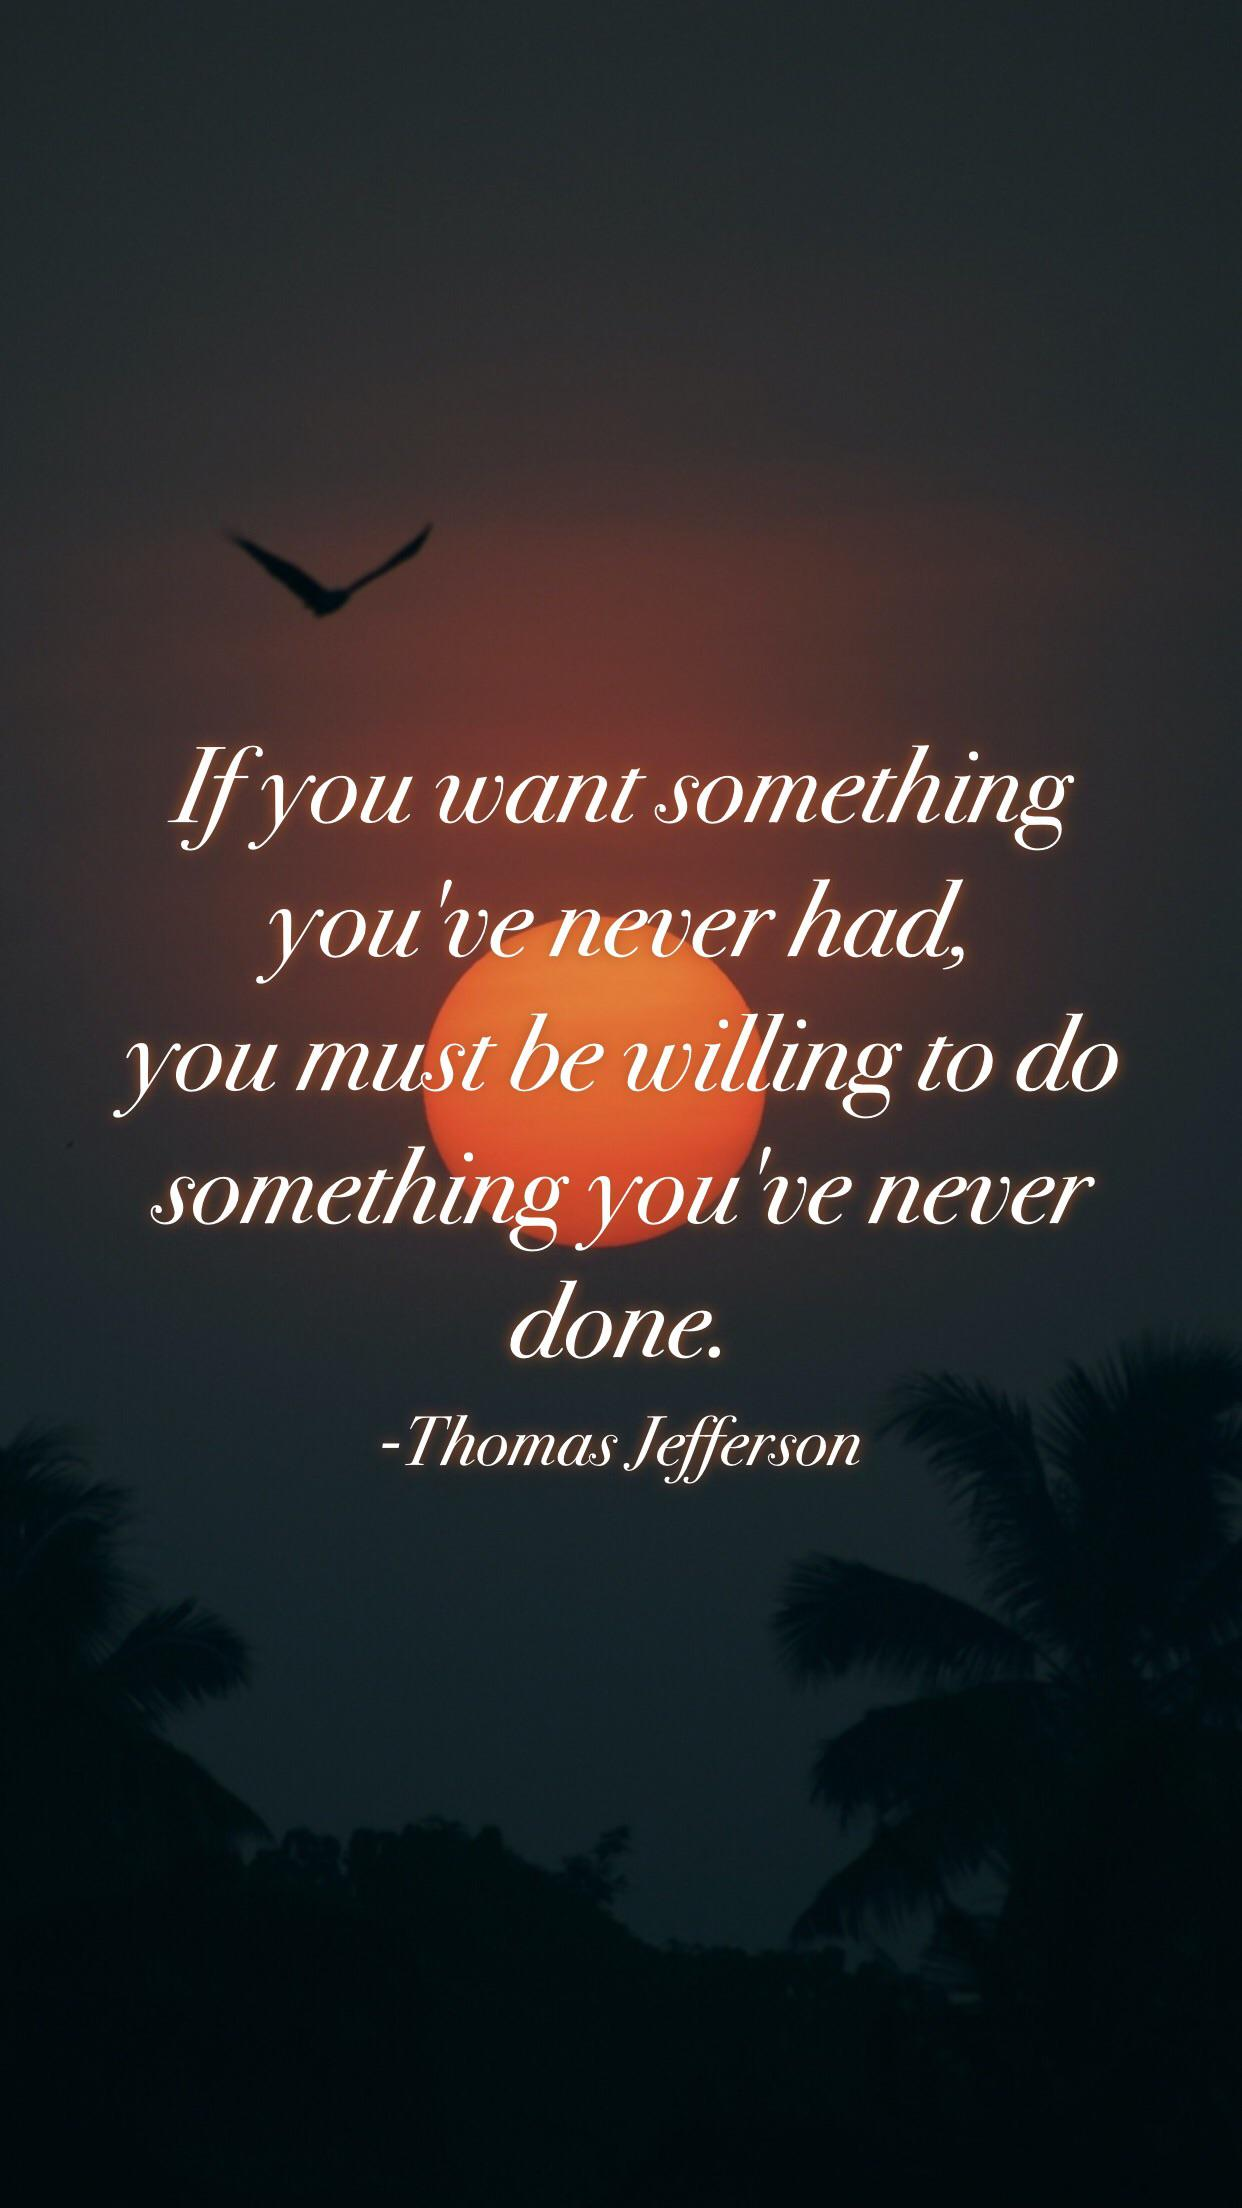 """""""If you want something you've never had, you must be willing to do something you've never done.""""-Thomas Jefferson [1242 x 2208]"""